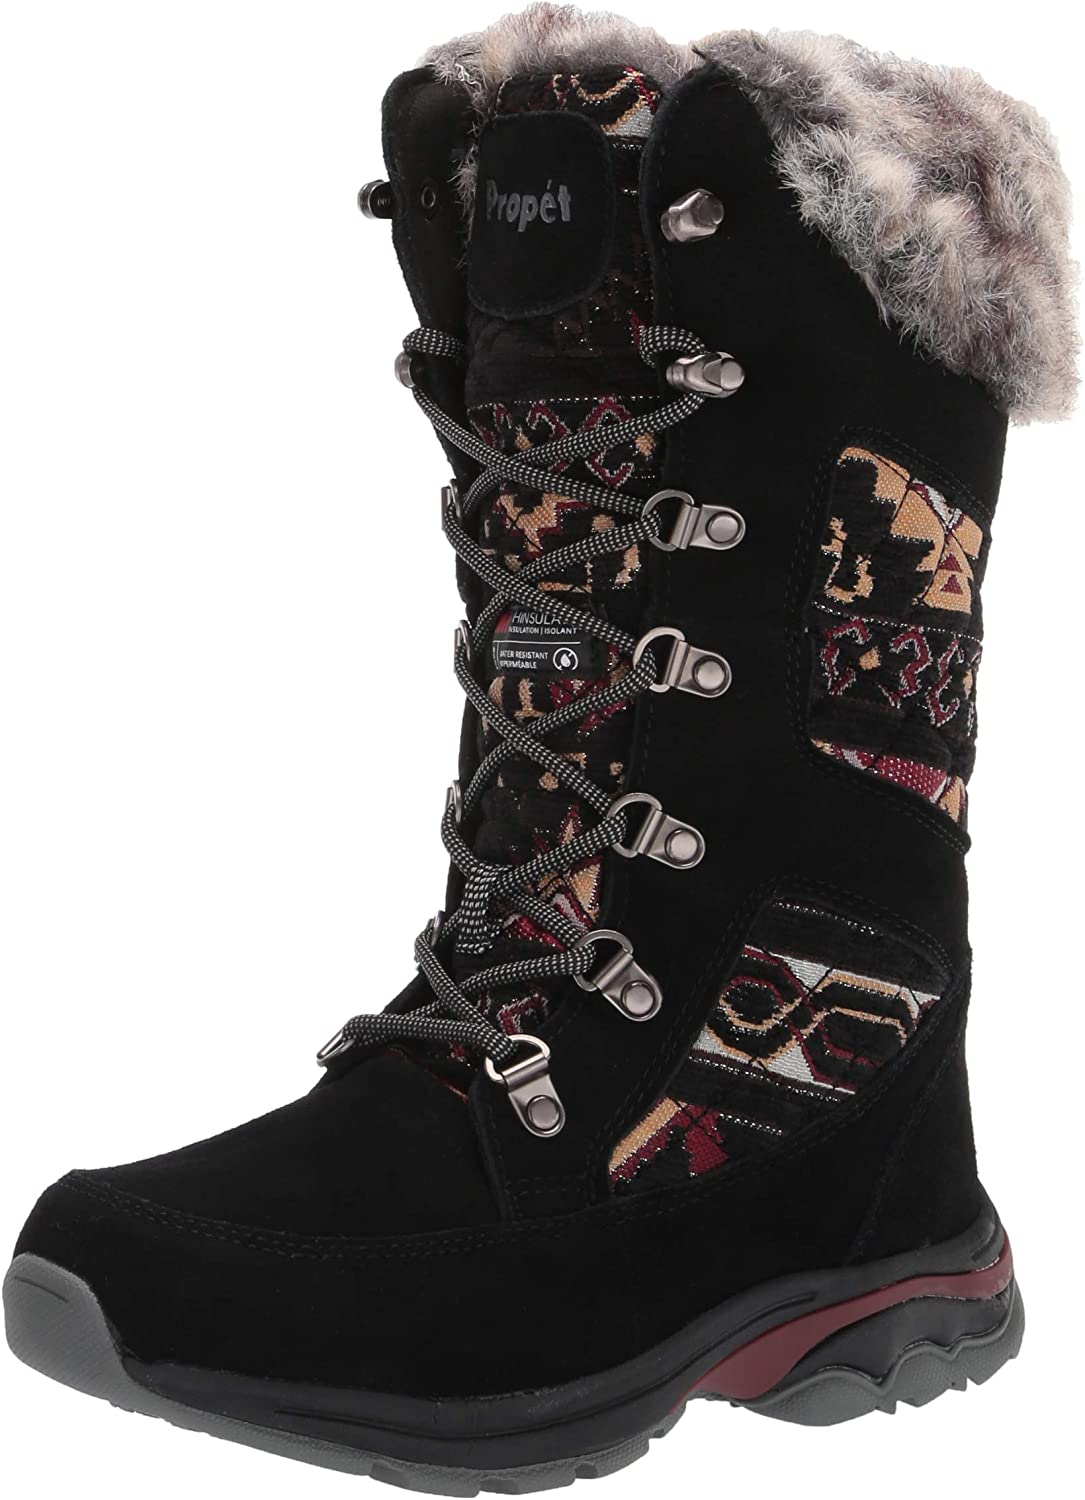 Limited price Propet Women's Peri Boot Snow National uniform free shipping